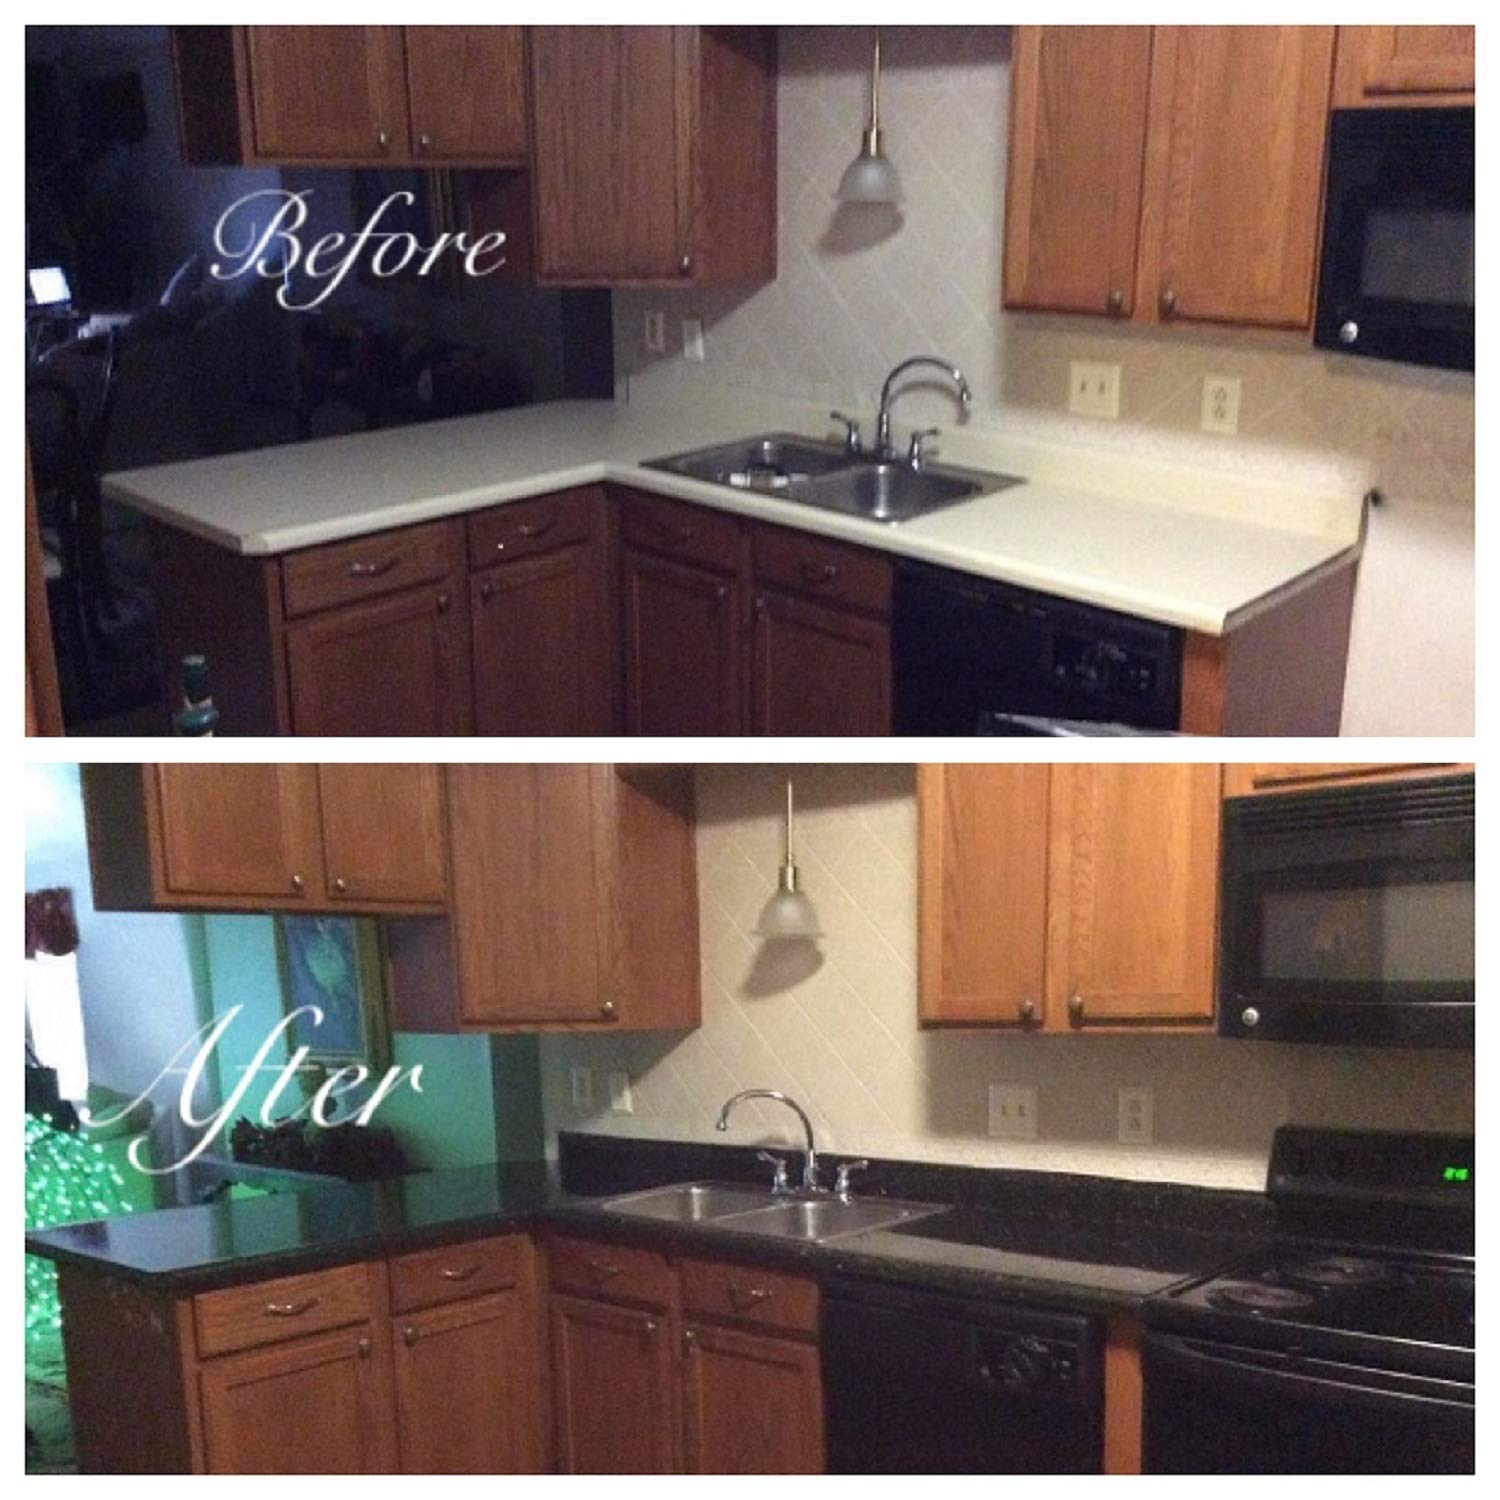 Countertop Paint? No!! Upgrade Counter Tops with Removable Black Marble Granite Bubble Resistant SELF Adhesive PET/PVC Vinyl Film 36'' x 96'' by EZ FAUX DECOR (Image #8)